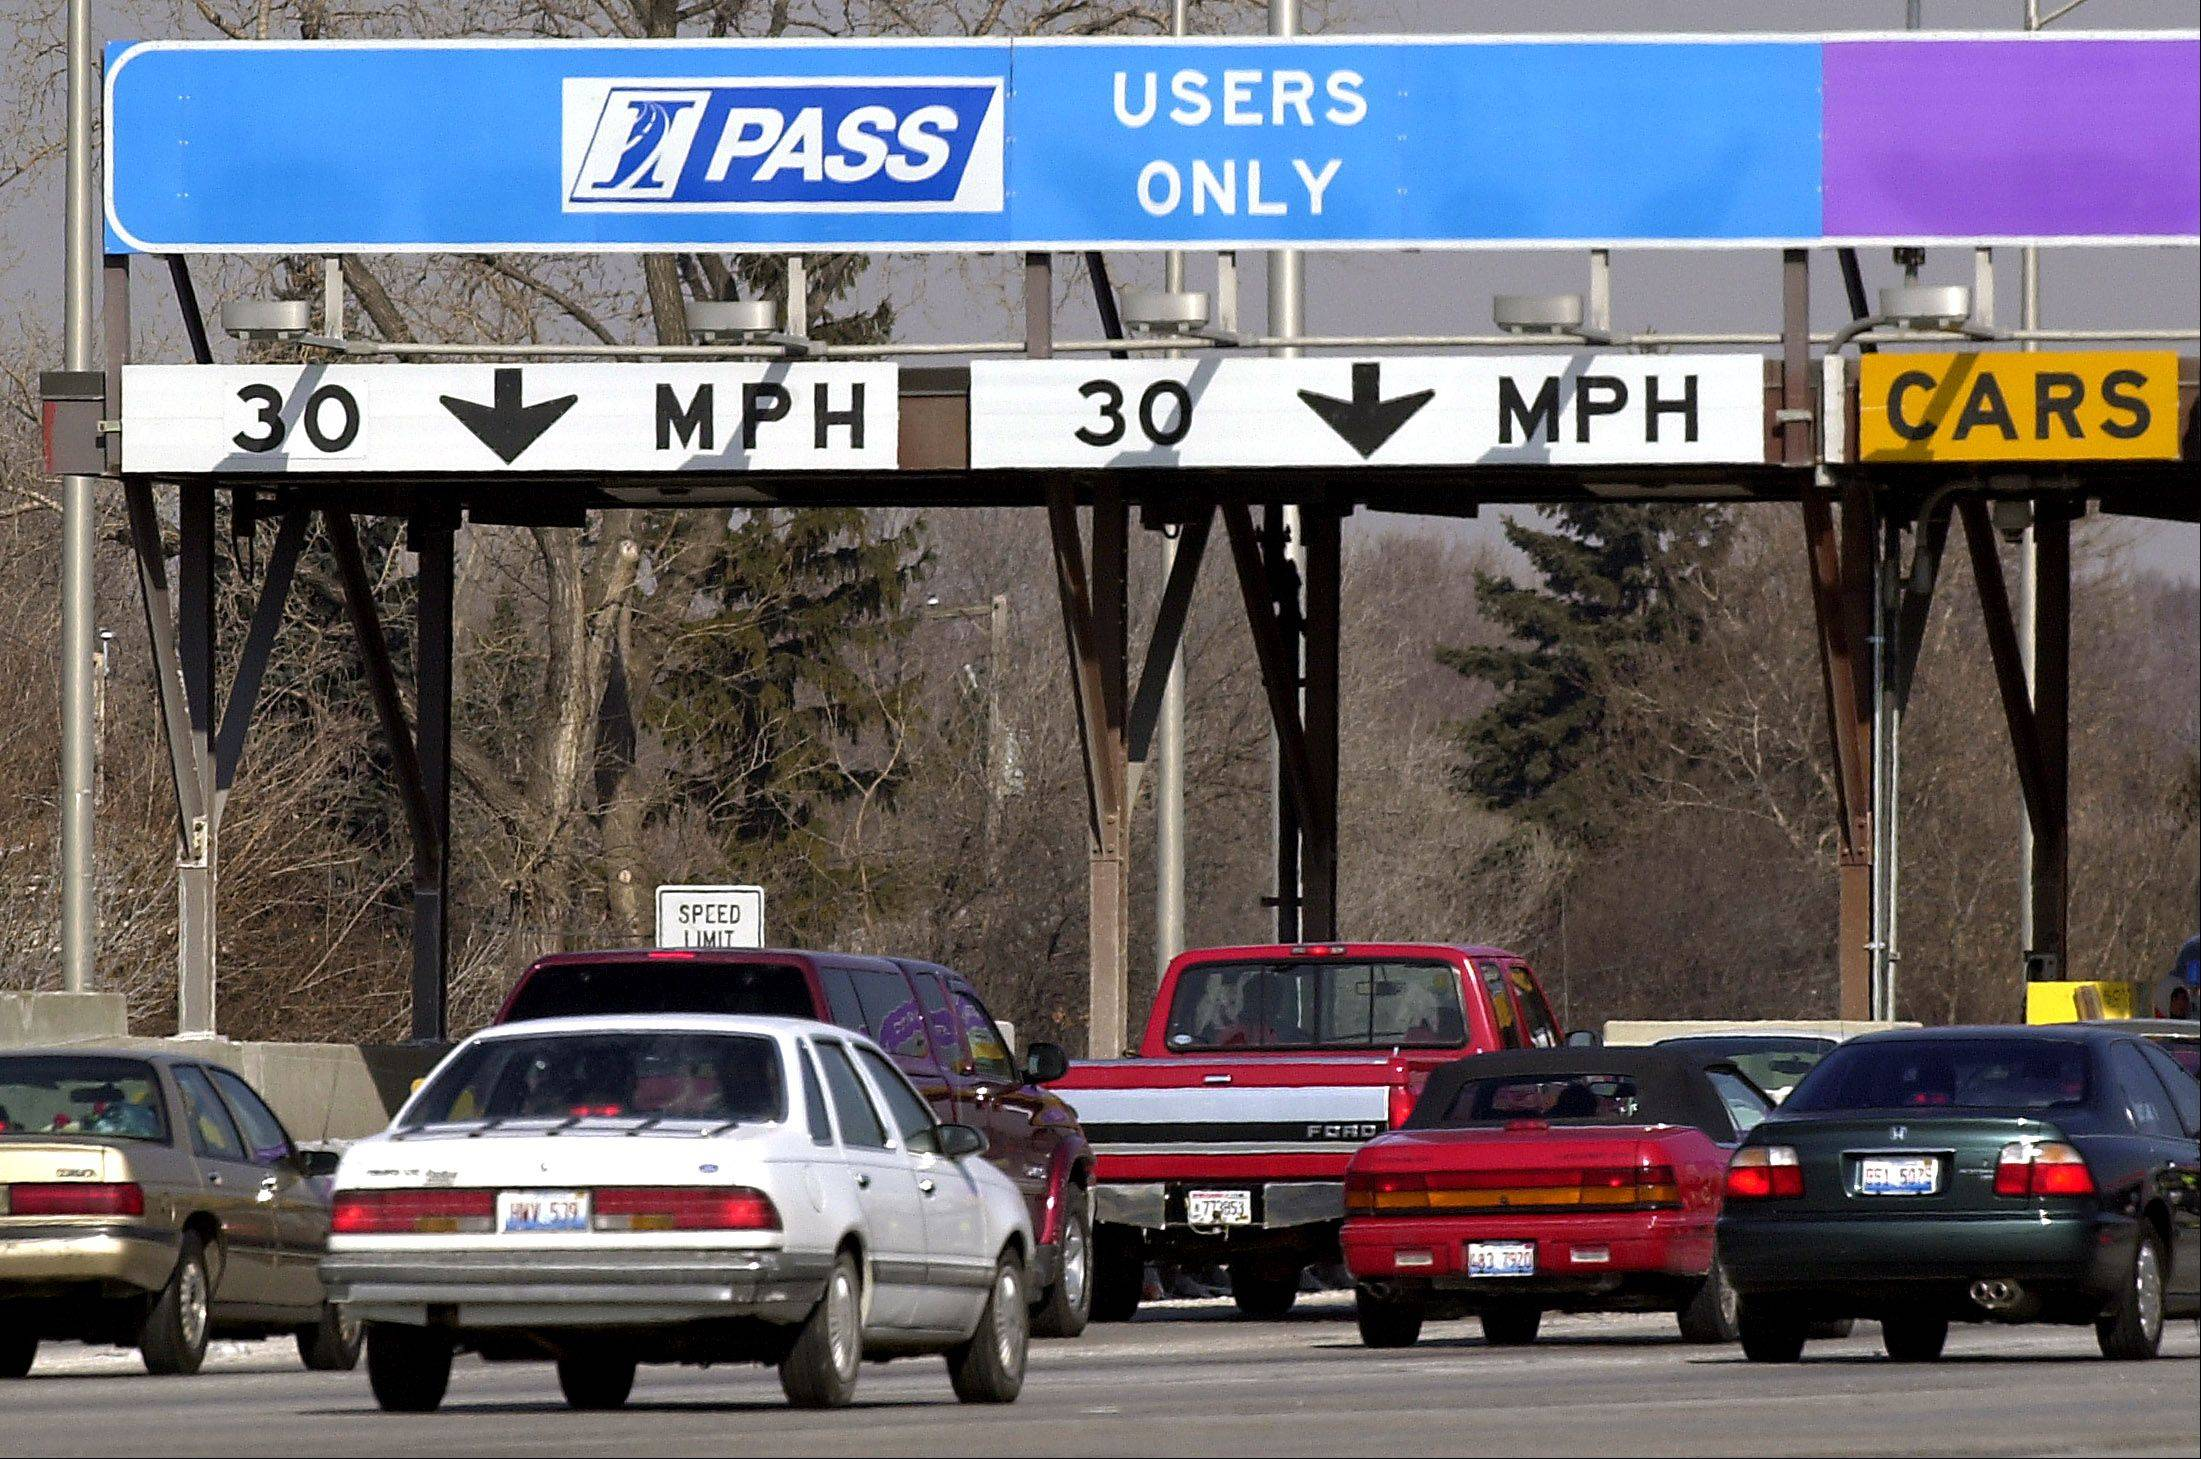 Disputing incorrect toll violations should get easier